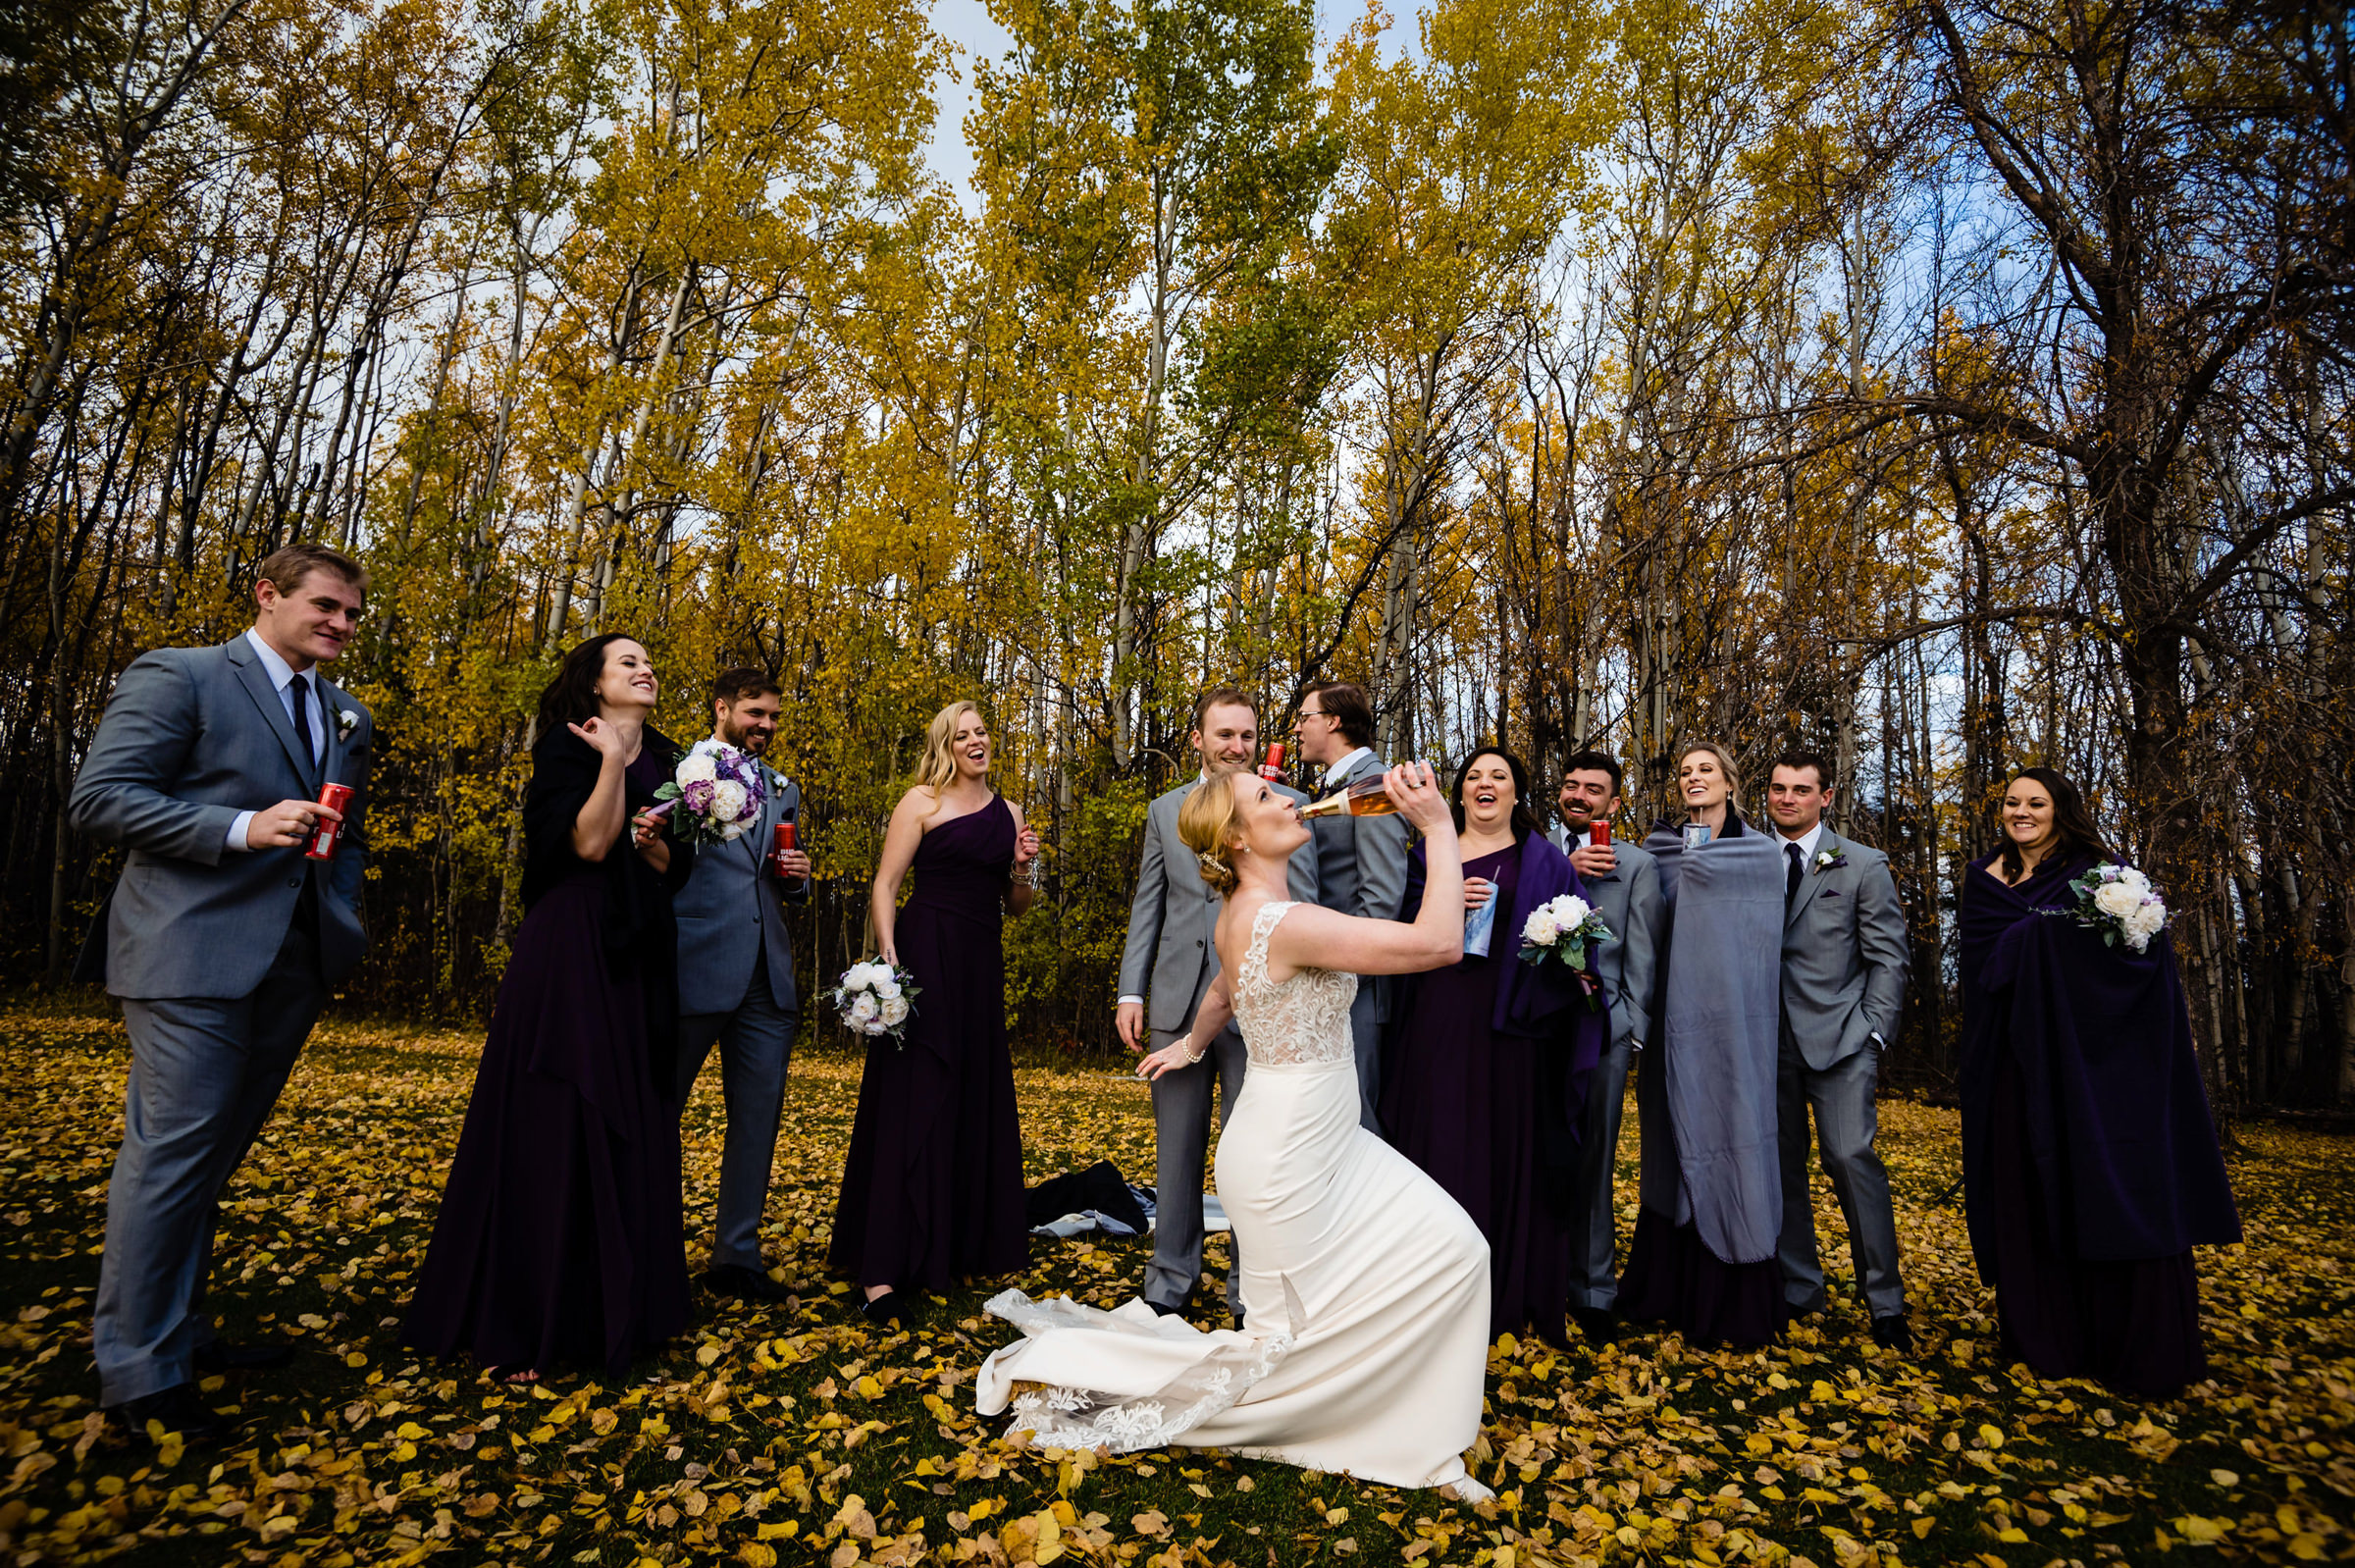 kneeing bride drinking from a bottle with wedding  party outdoors - photo by Moore Photography